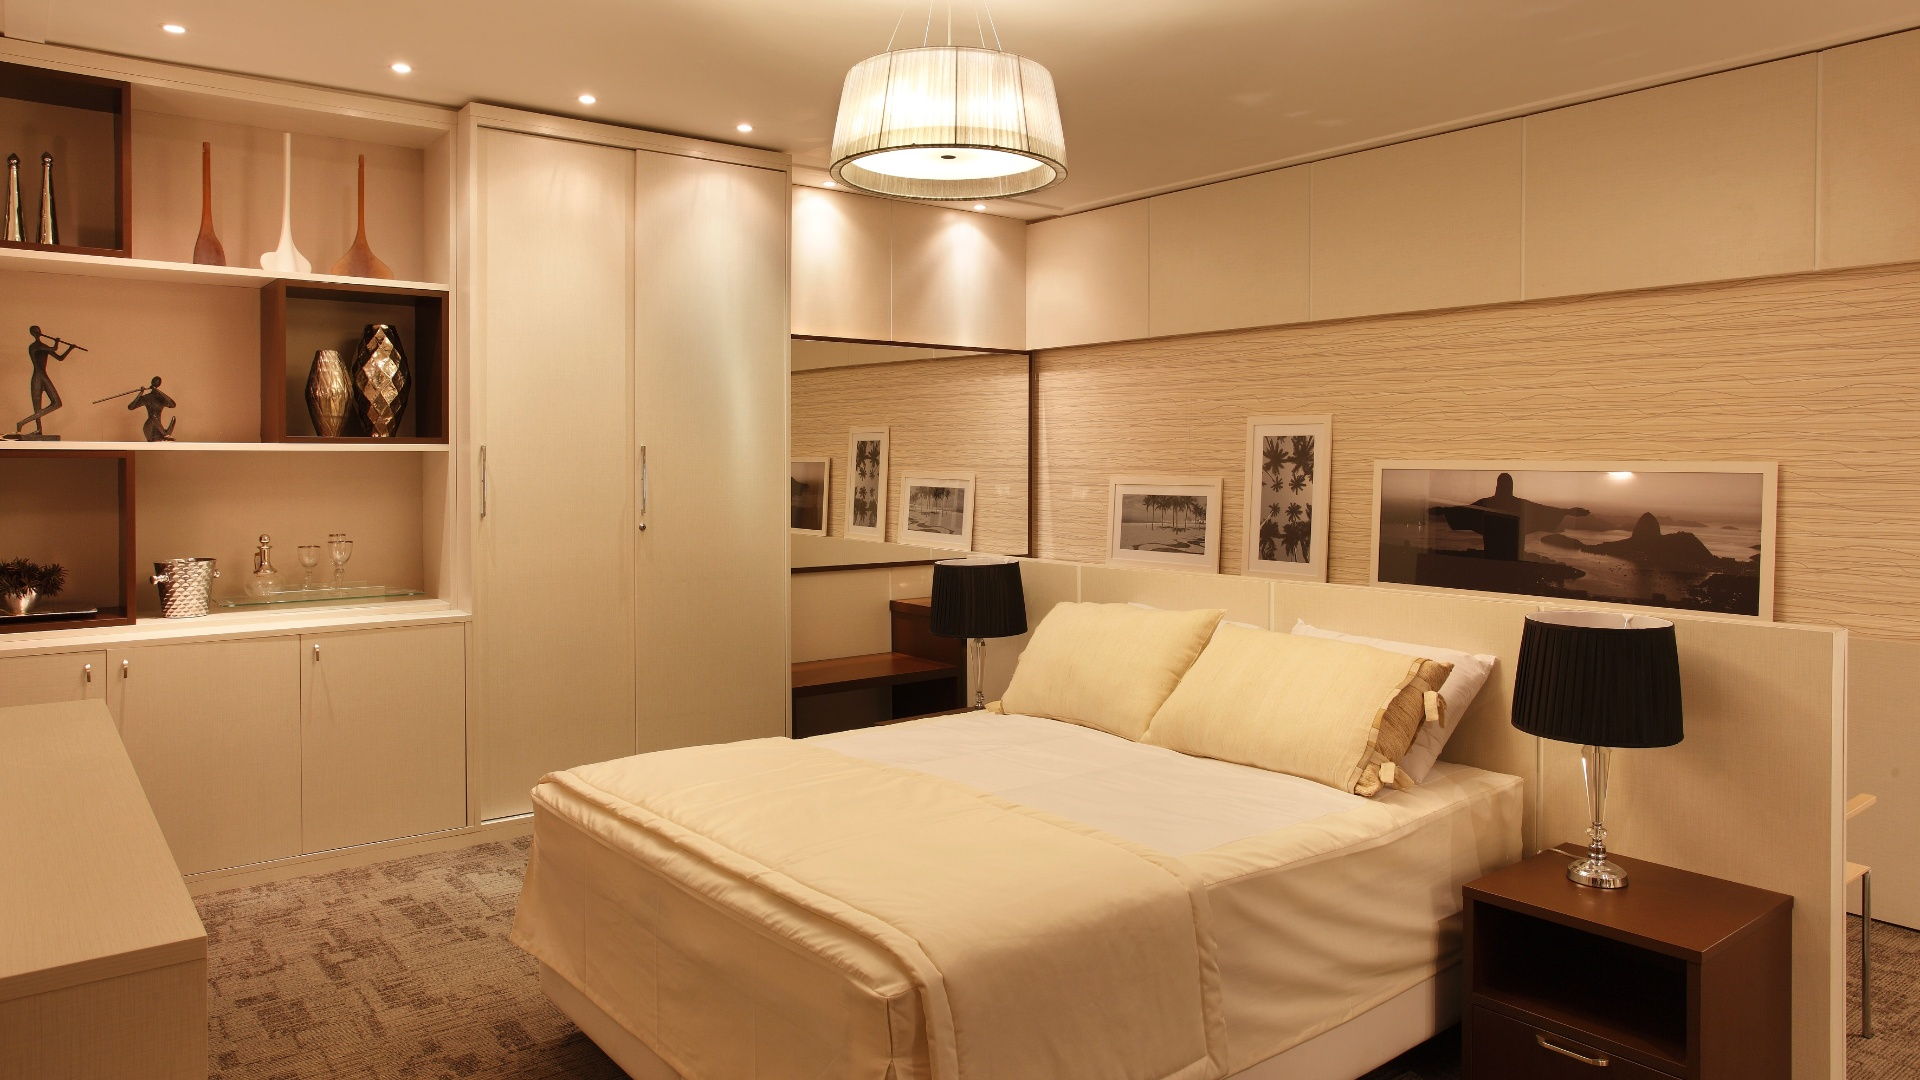 Quarto Standard Hotelaria criado por Bianca Pesce. A mostra Morar Mais por Menos RJ segue at dia 4 de novembro de 2012, na Av. Epitcio Pessoa, 4.866, Rio de Janeiro